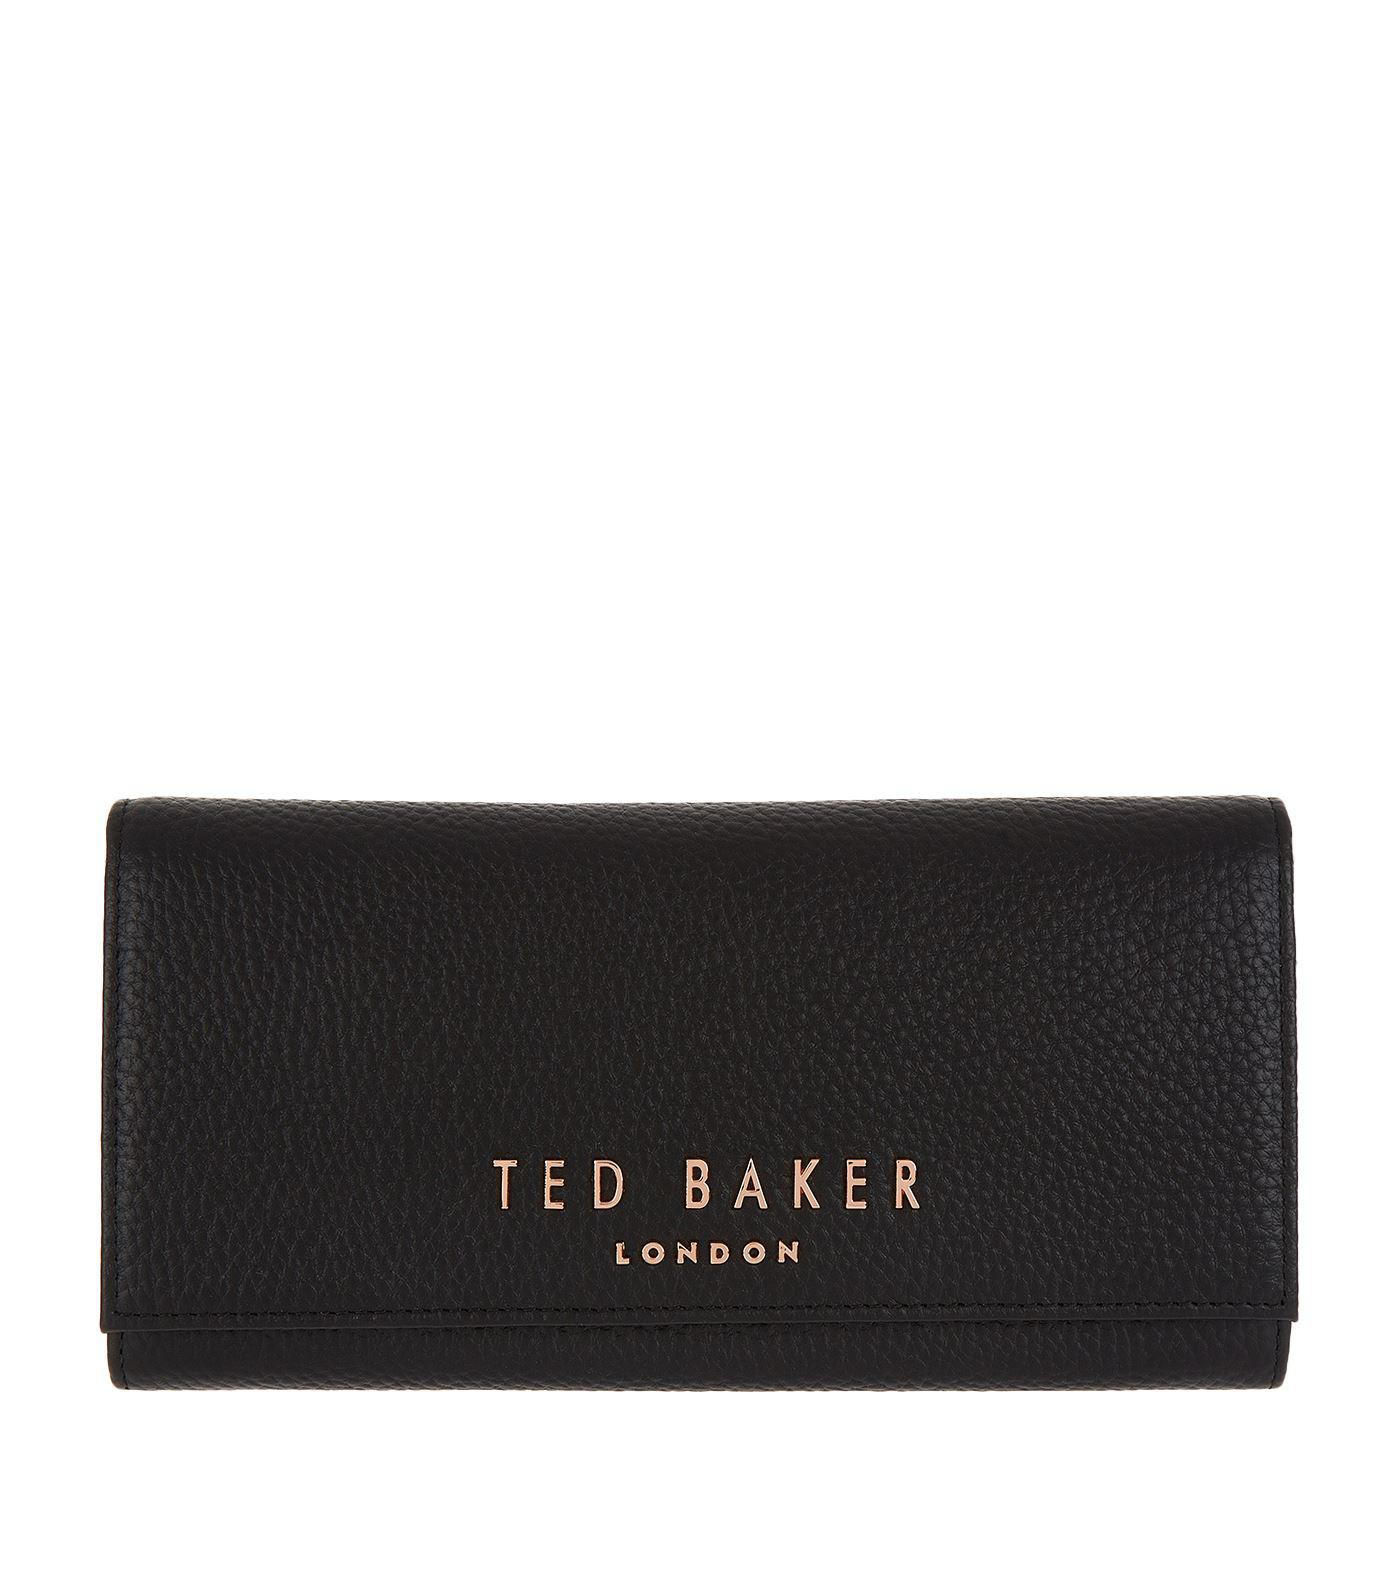 64a671a5e4af Ted Baker Leather Lura Matinee Purse in Black - Lyst